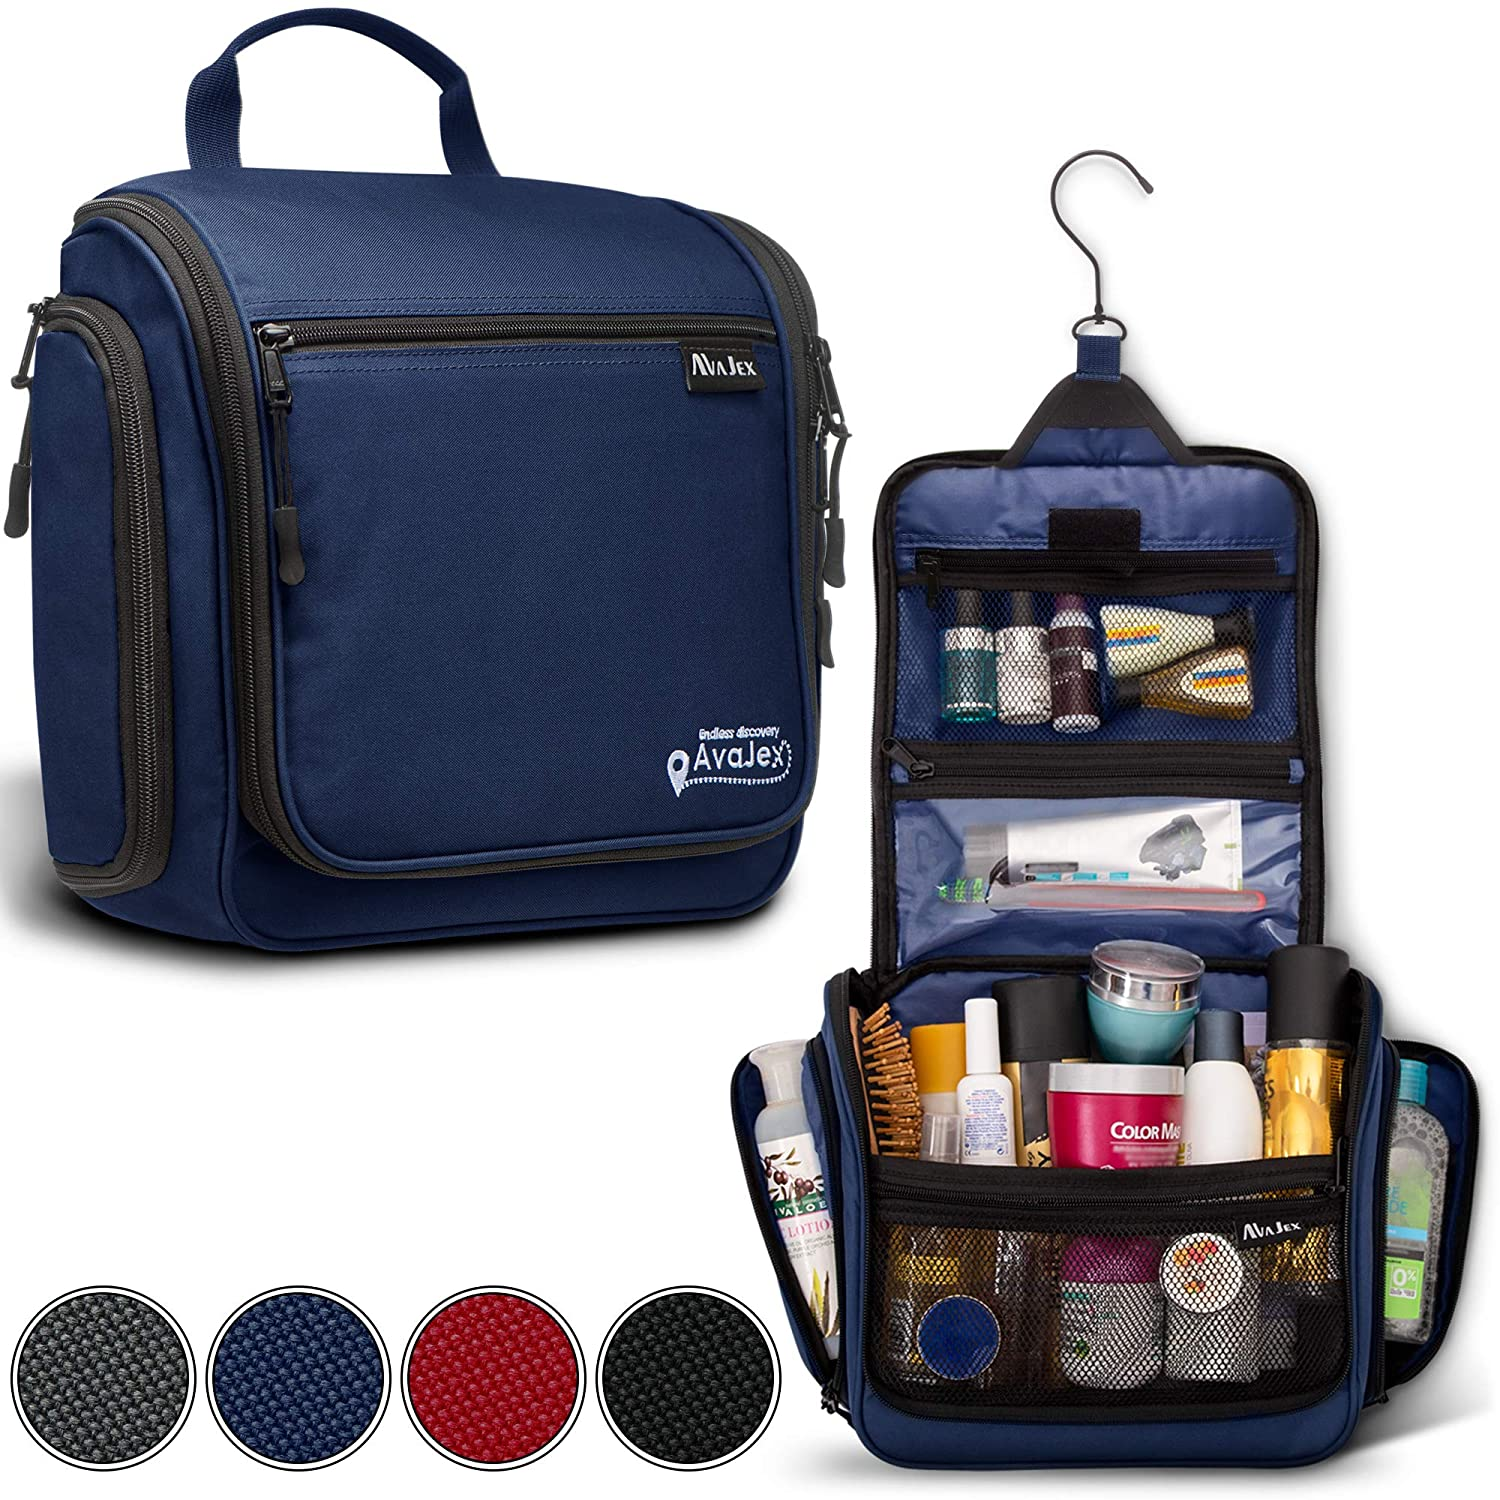 Premium Hanging Travel Toiletry Bag for Men and Women – Large Toiletry Organizer – Waterproof Hygiene Bag with Metal Swivel Hook, Durable Zippers and Large Capacity for Toiletries, Makeup, Cosmetics